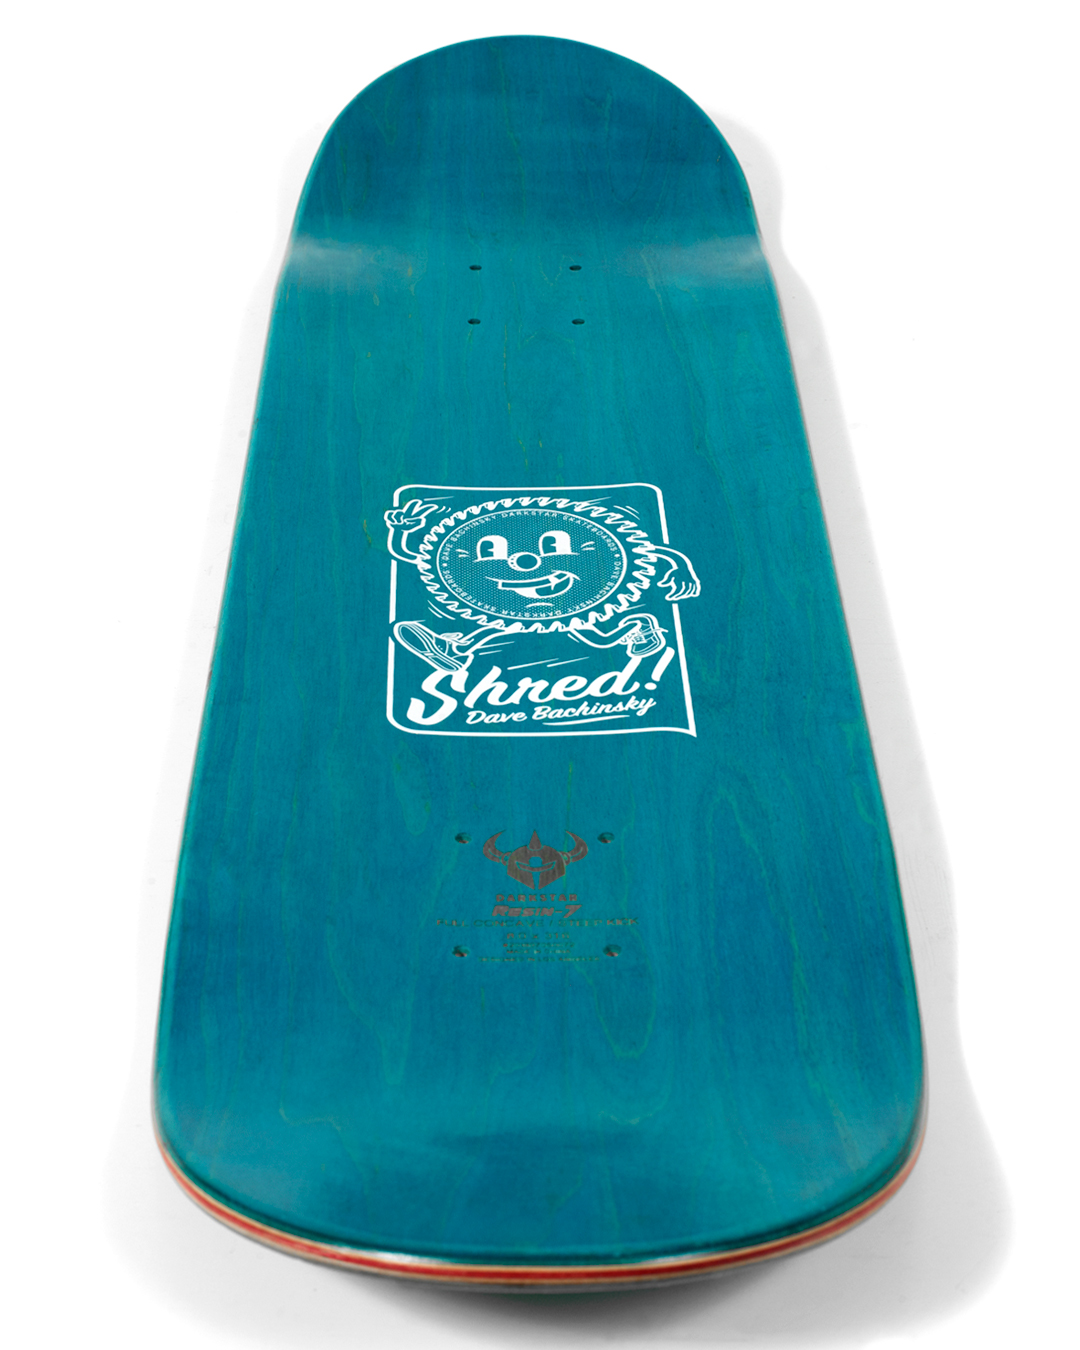 Darkstar Skateboards Summer 2019 Bachinsky 1